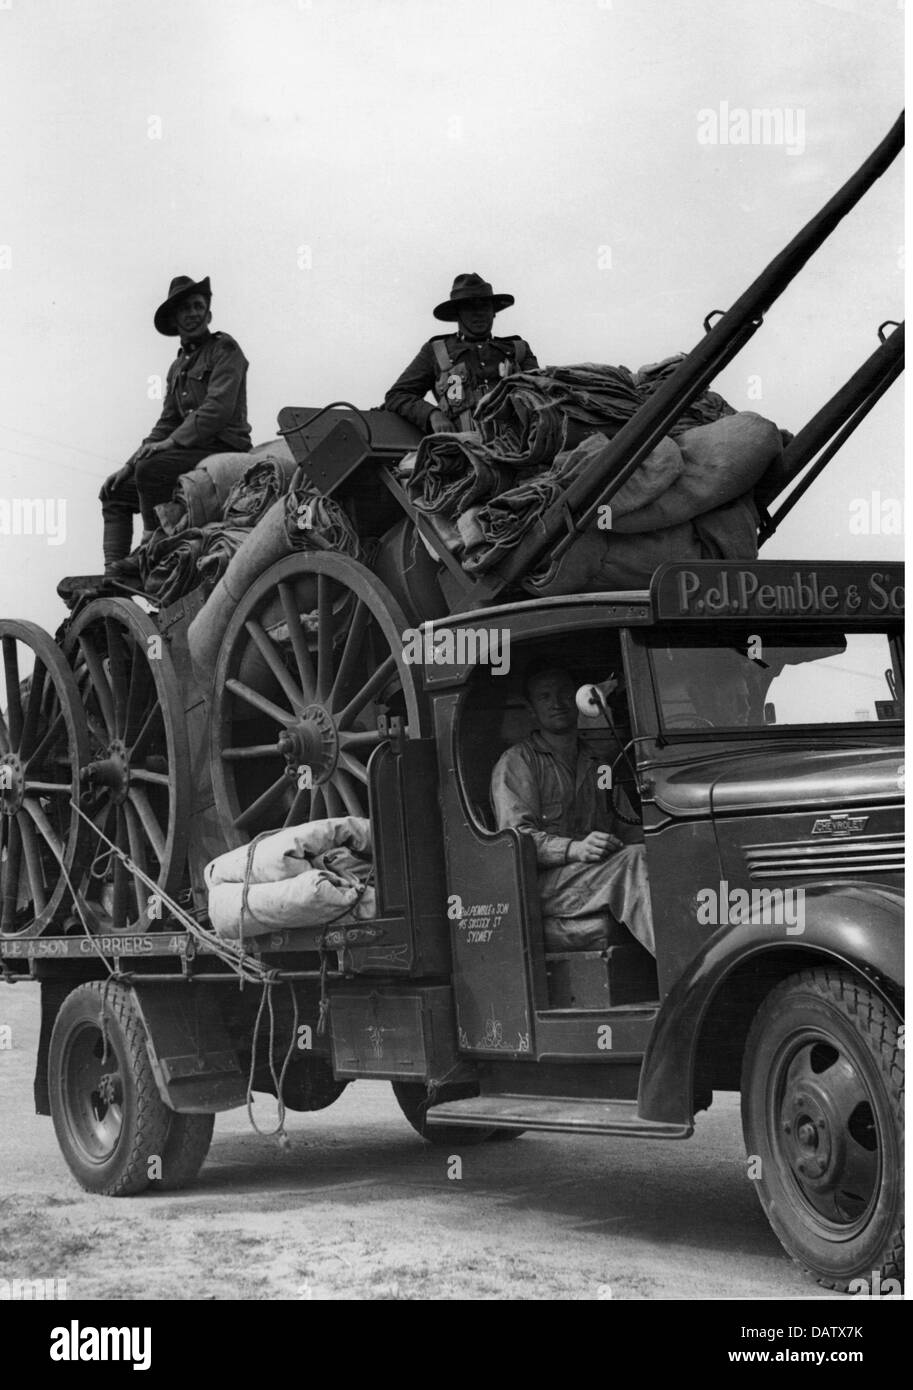 military, Australia, equipment and militiamen on a civilian lorry, circa 1940, Additional-Rights-Clearences-NA - Stock Image